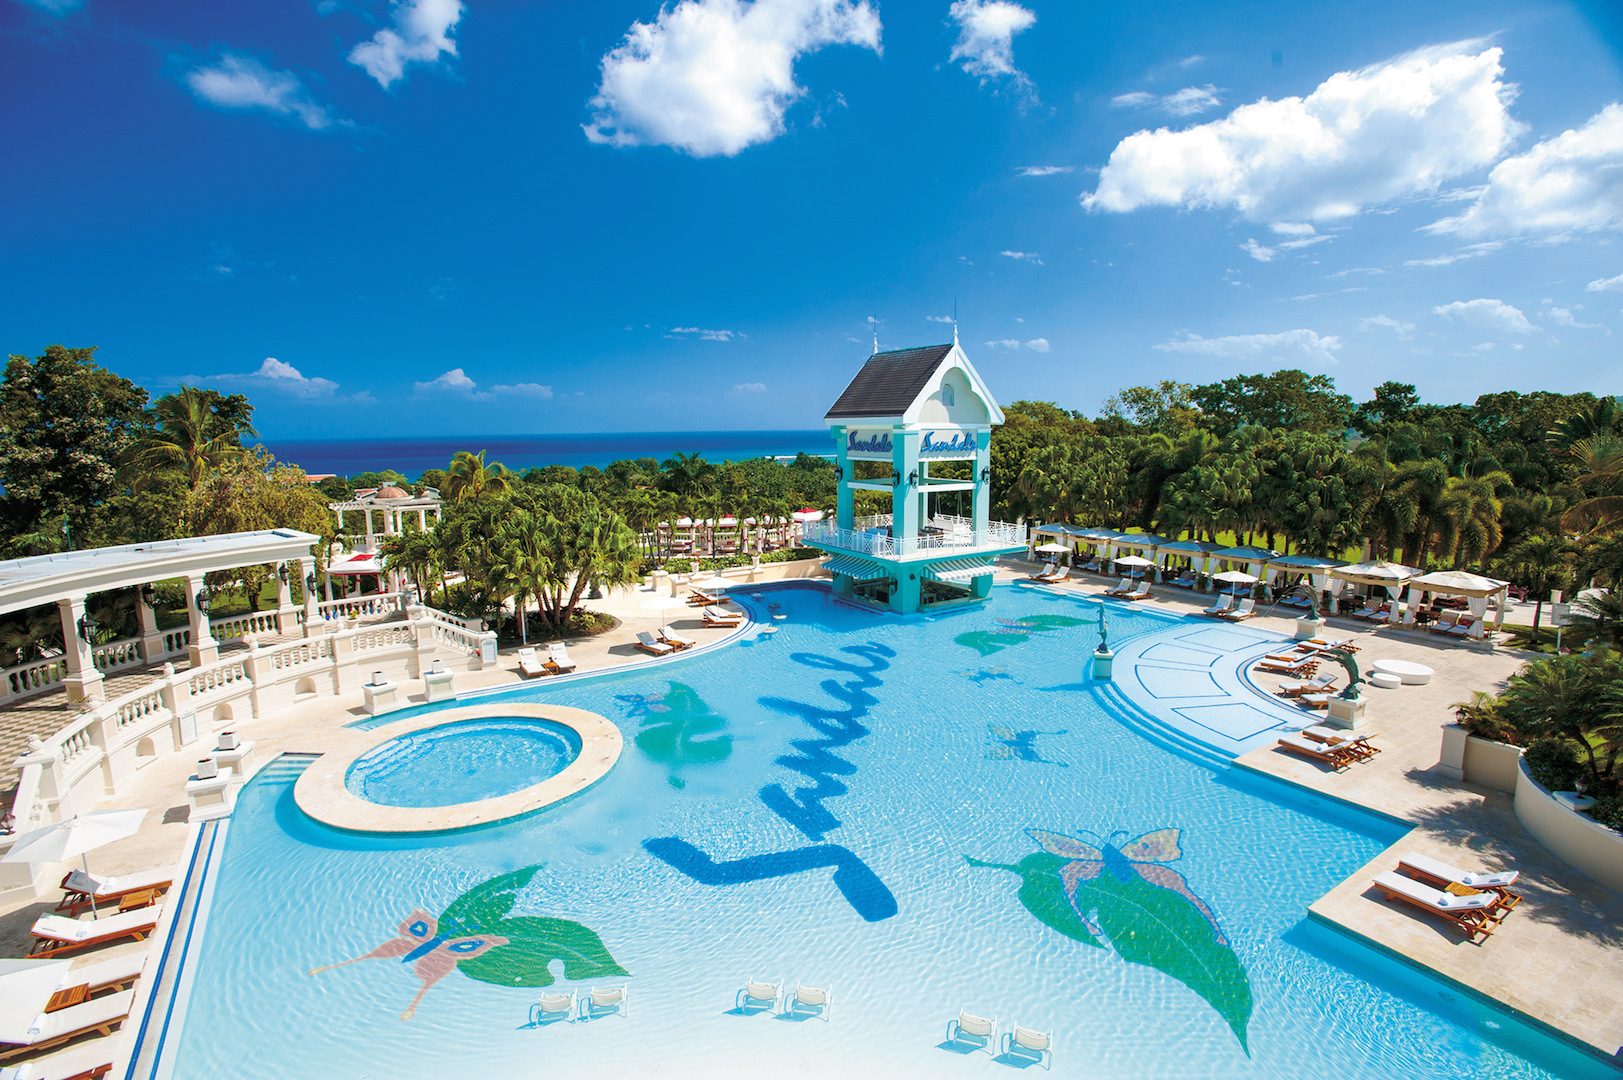 Sandals Royal Caribbean. Sandals Royal Caribbean resort is located just short drive from the downtown, between several other resorts. What makes this resort stand out is its private island with a Thai restaurant, additional beach and pool amenities.